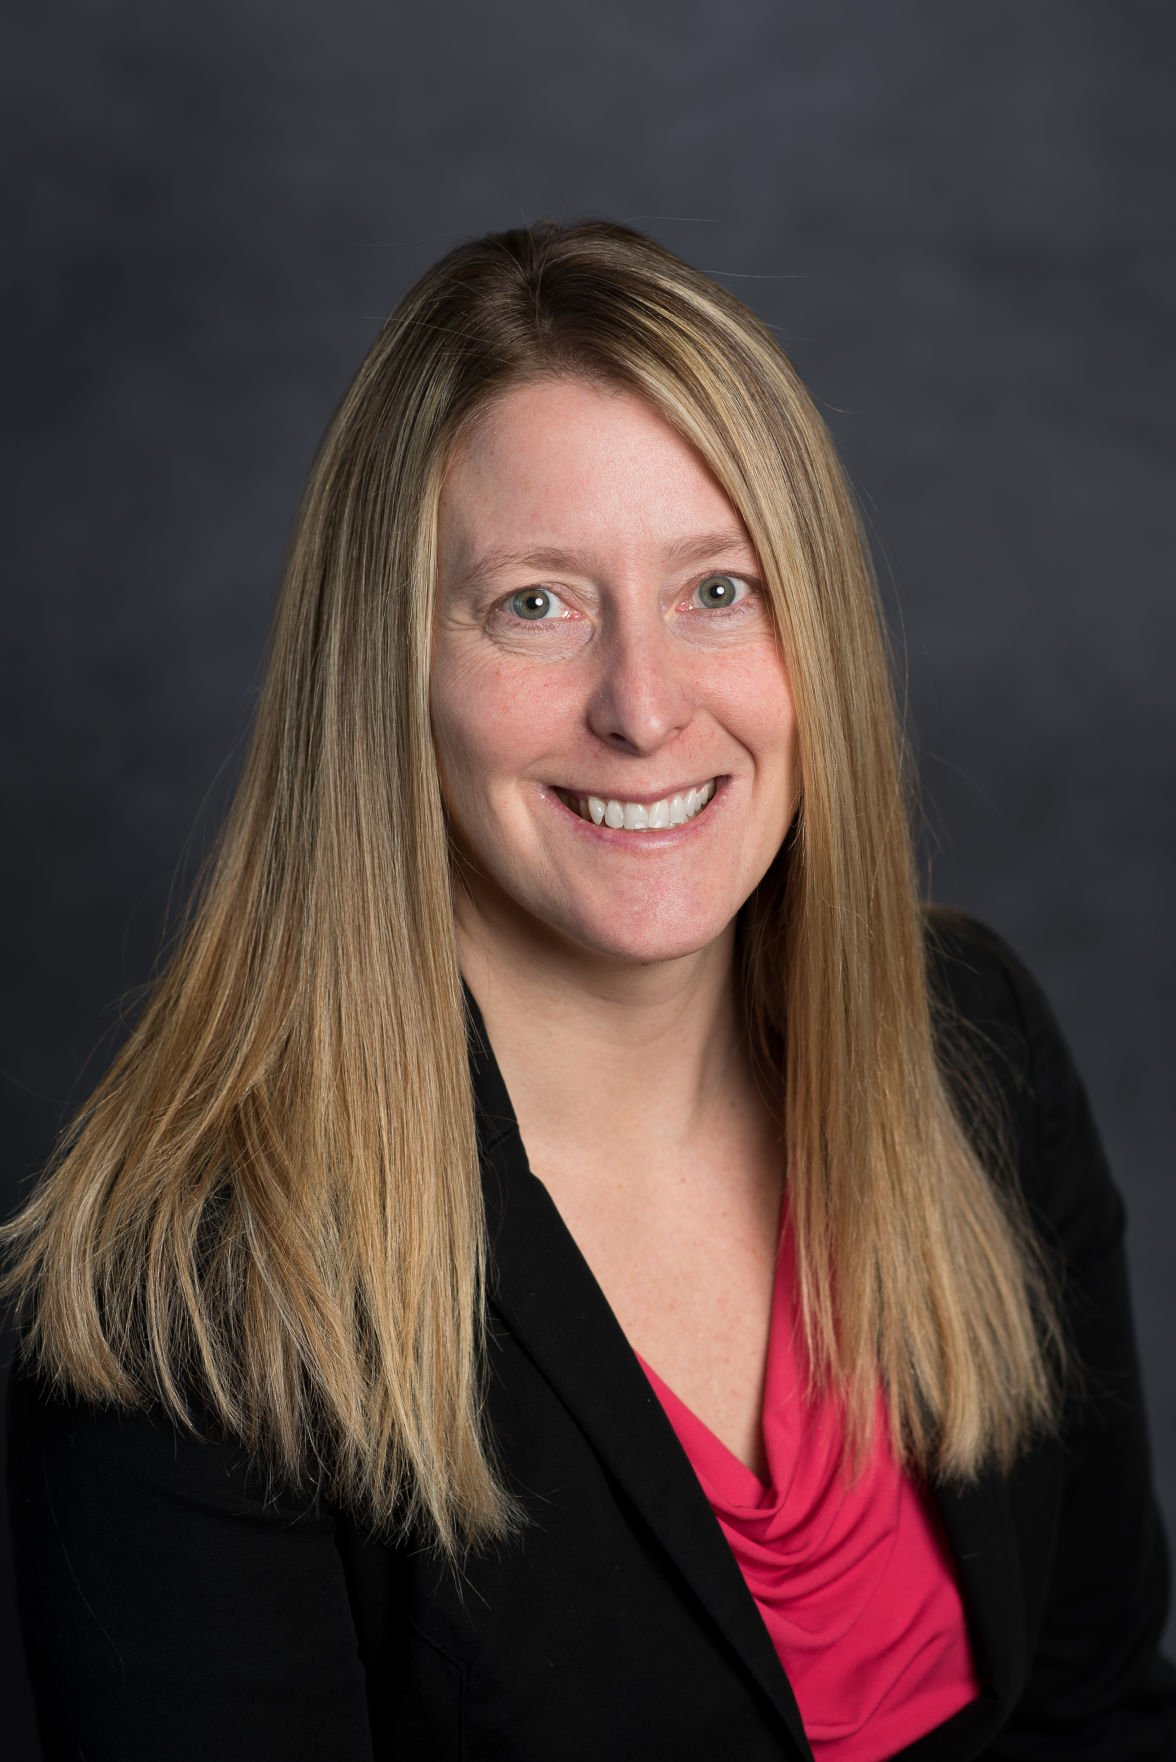 Erin Muck, CEO of CCMH effective August 1, 2019